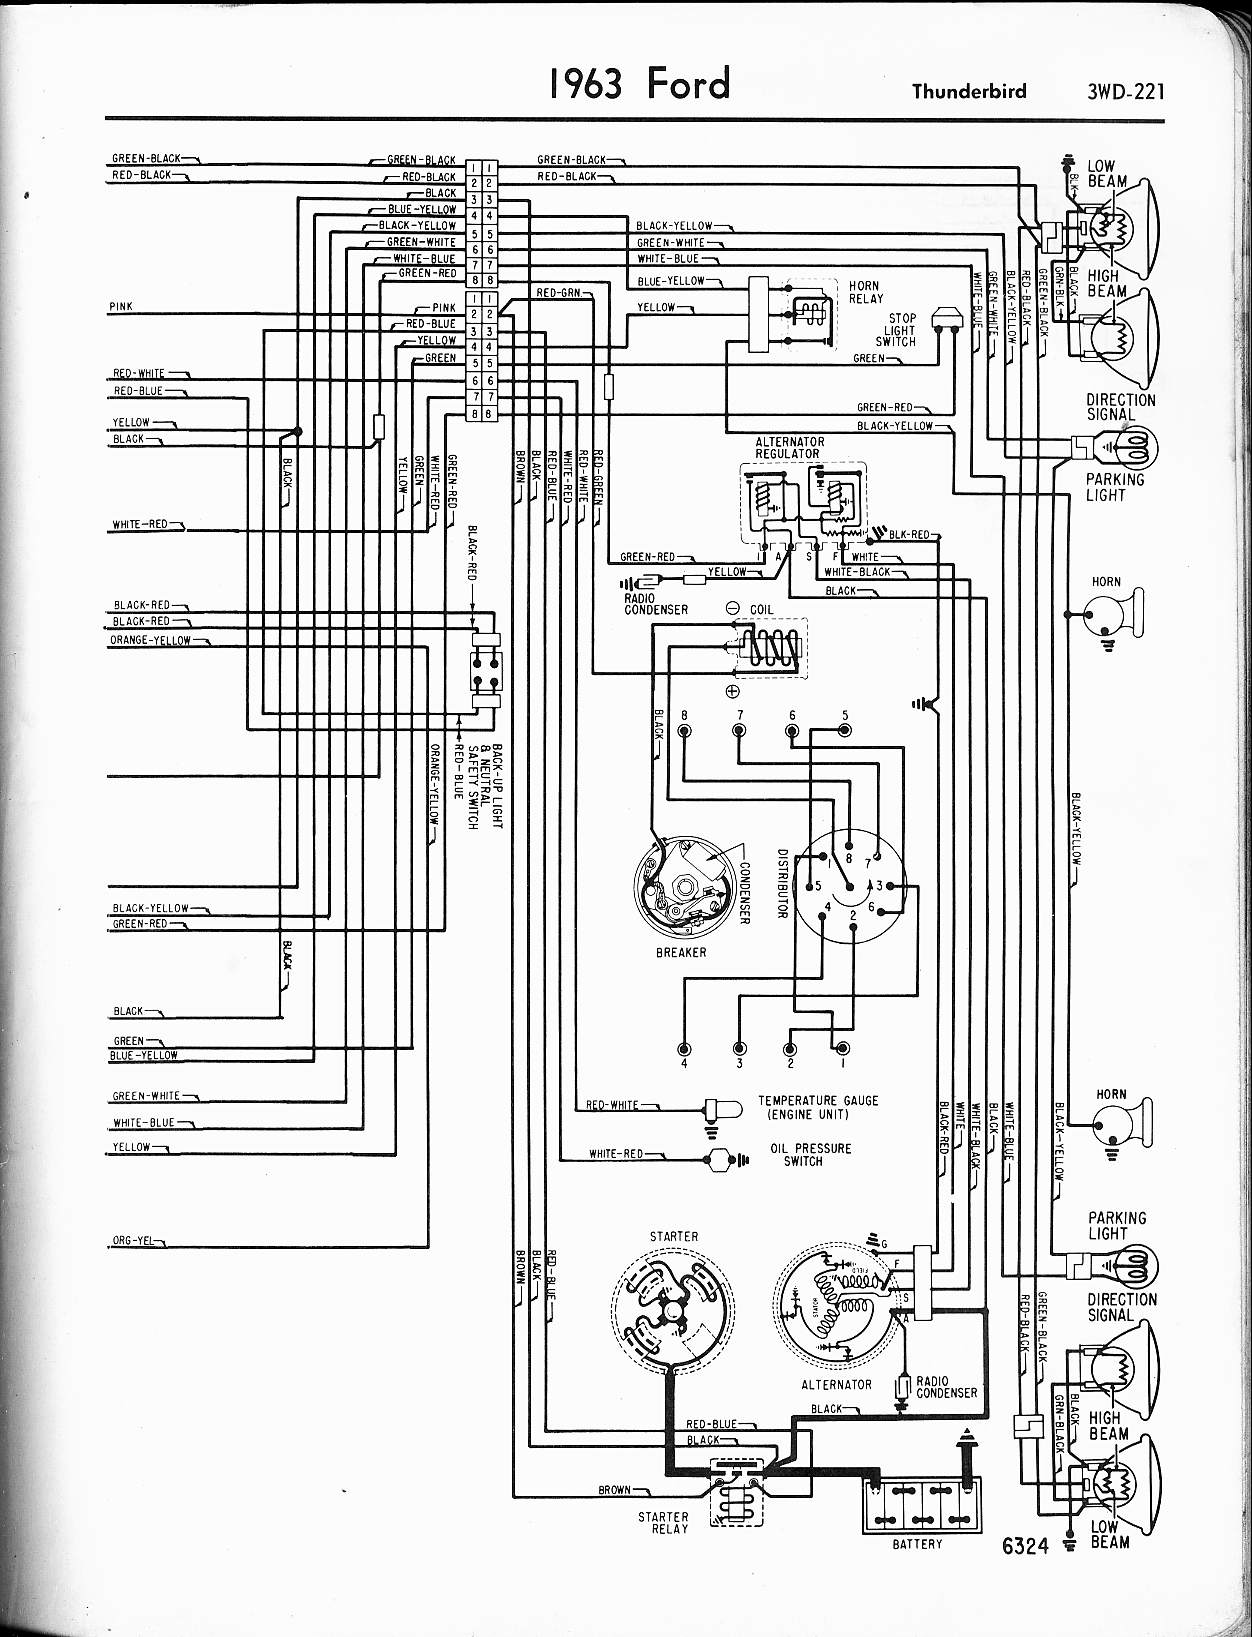 Fordindex on 2006 ford mustang fuse diagram